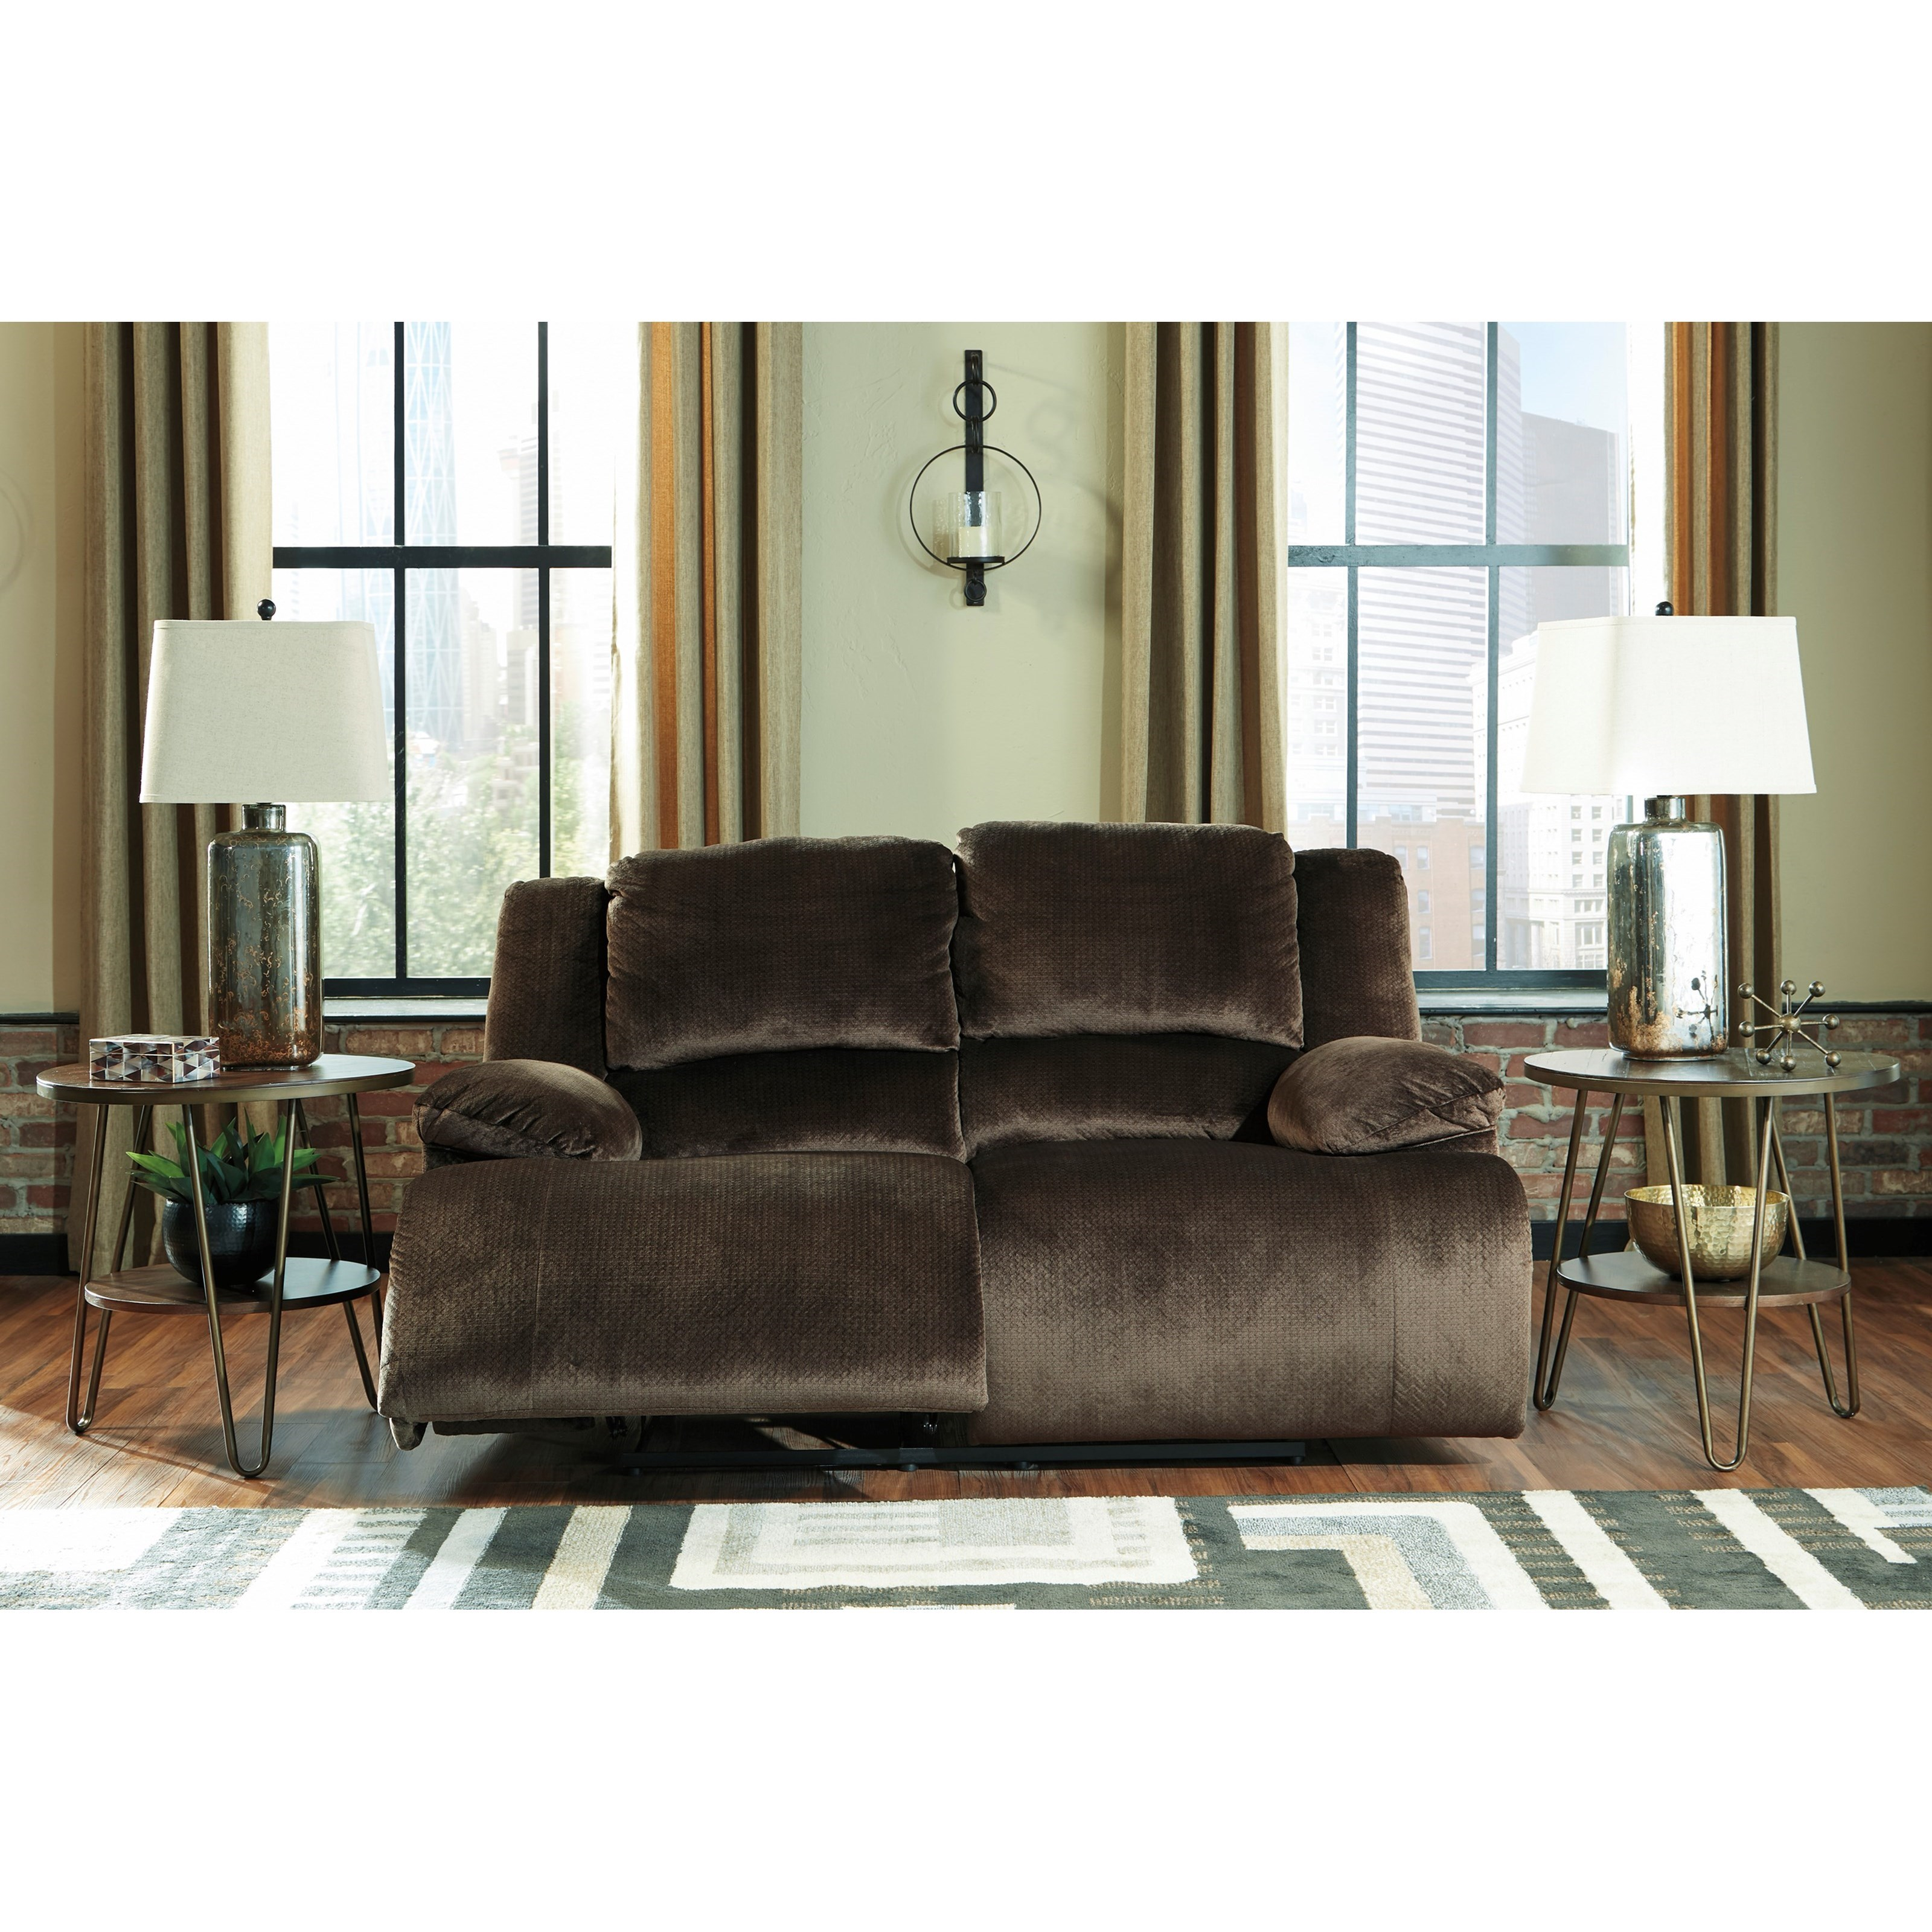 Ashley Furniture Manufacturer: Signature Design By Ashley Clonmel Contemporary Reclining